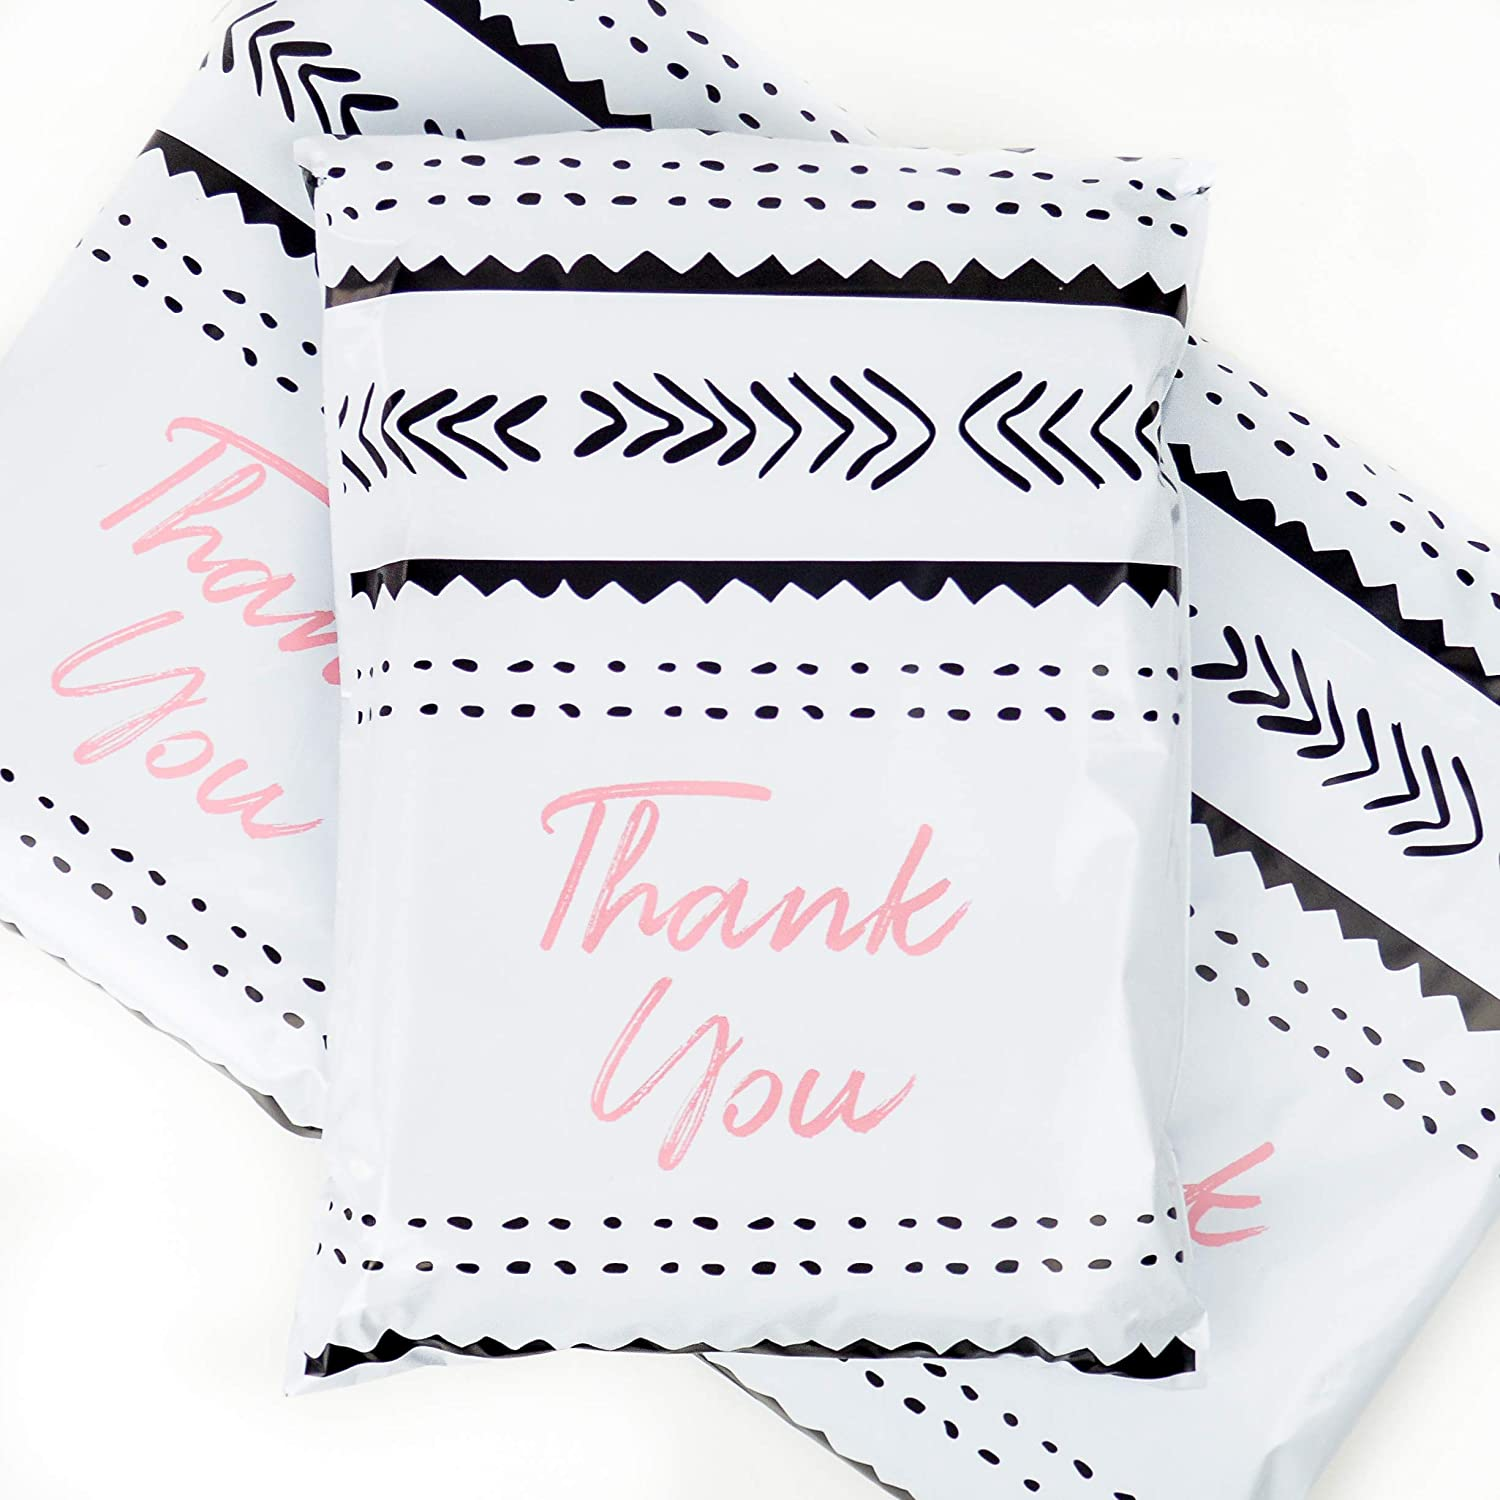 10x13 Pack of 100 Bubble Gum Reusable Poly Mailers Eco-Friendly Pink Thank You Double Seal Pull Tab Designer Boutique Poly a la Mode : Office Products